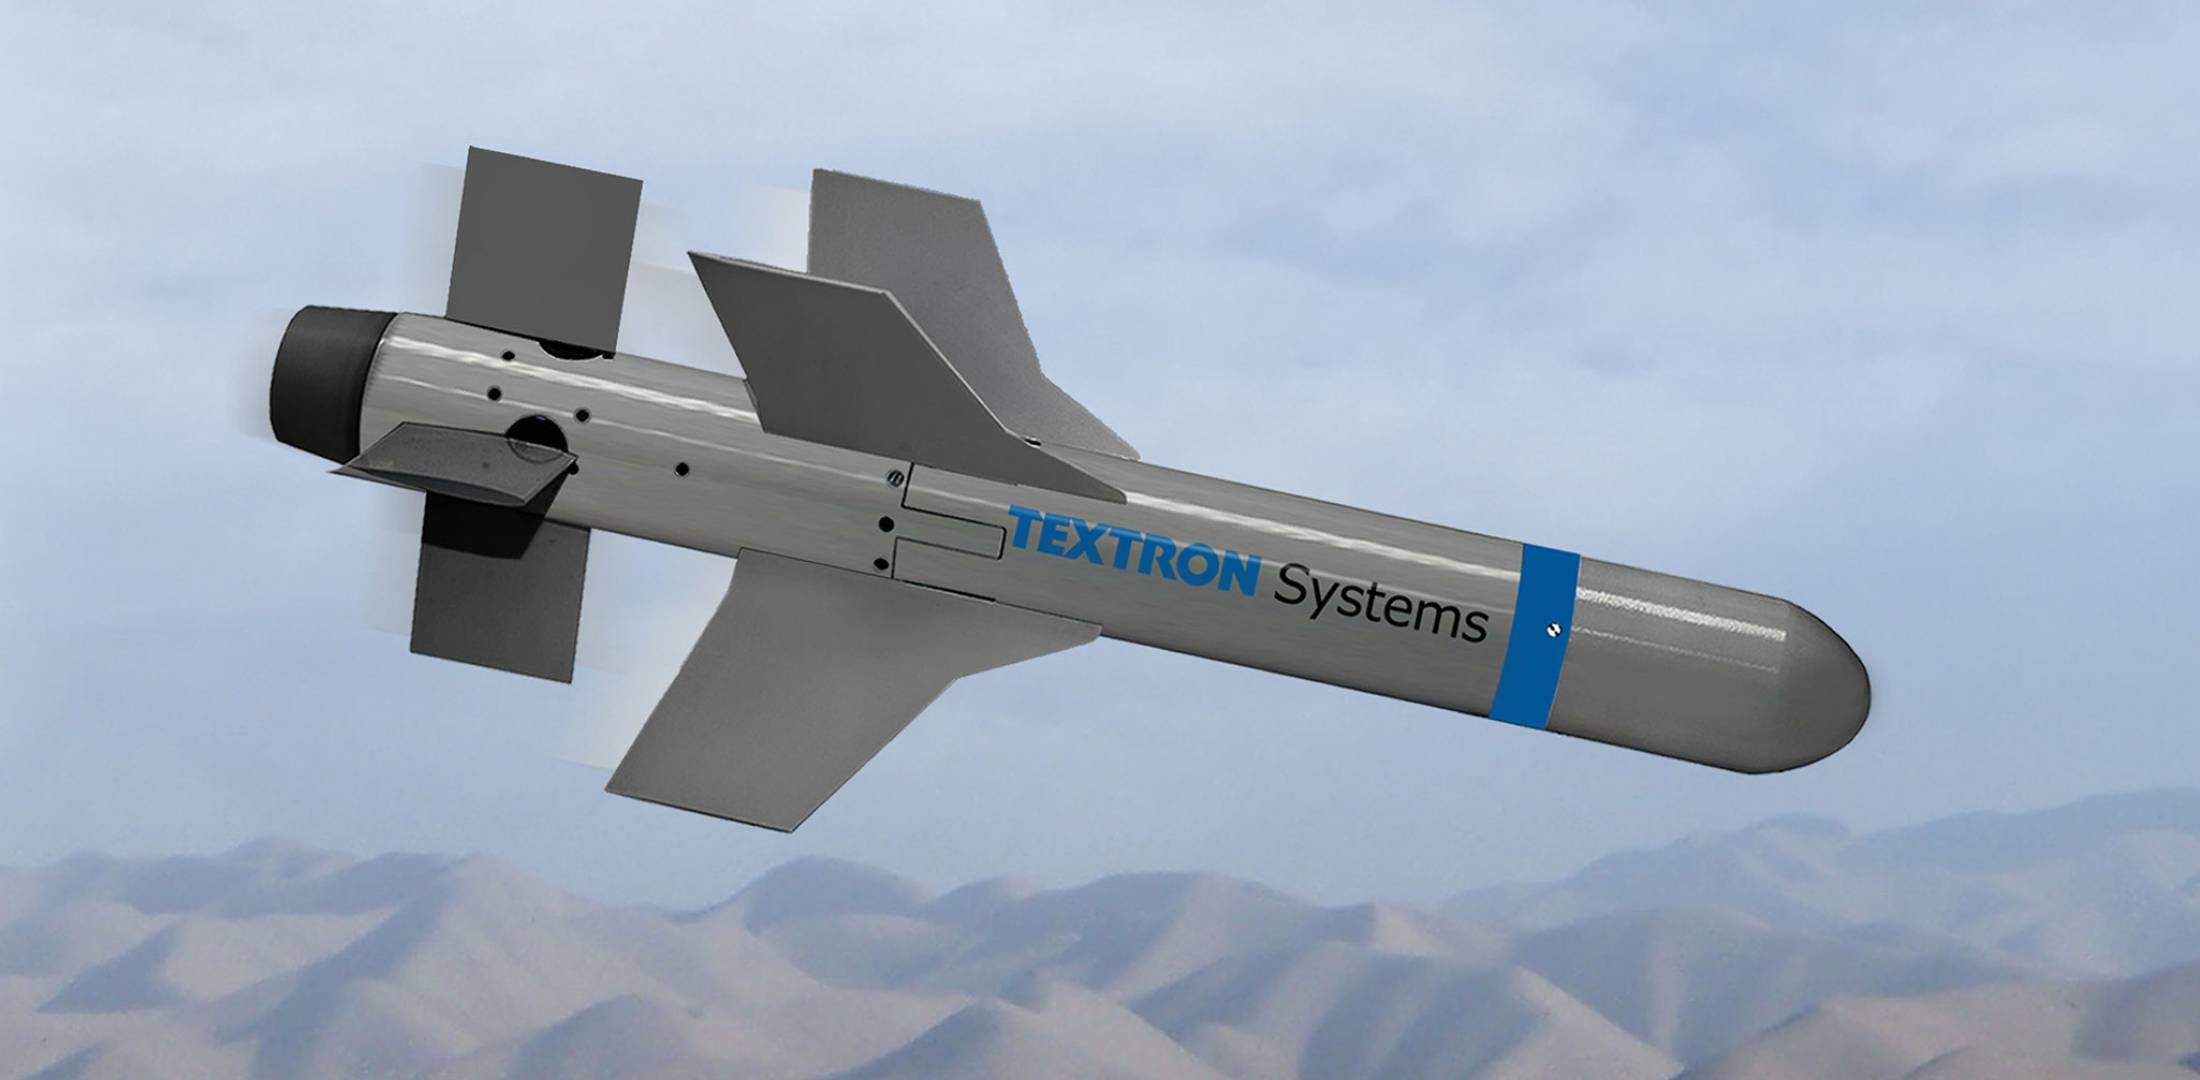 Textron and Thales Unleash UAV-delivered Fury | Defense News